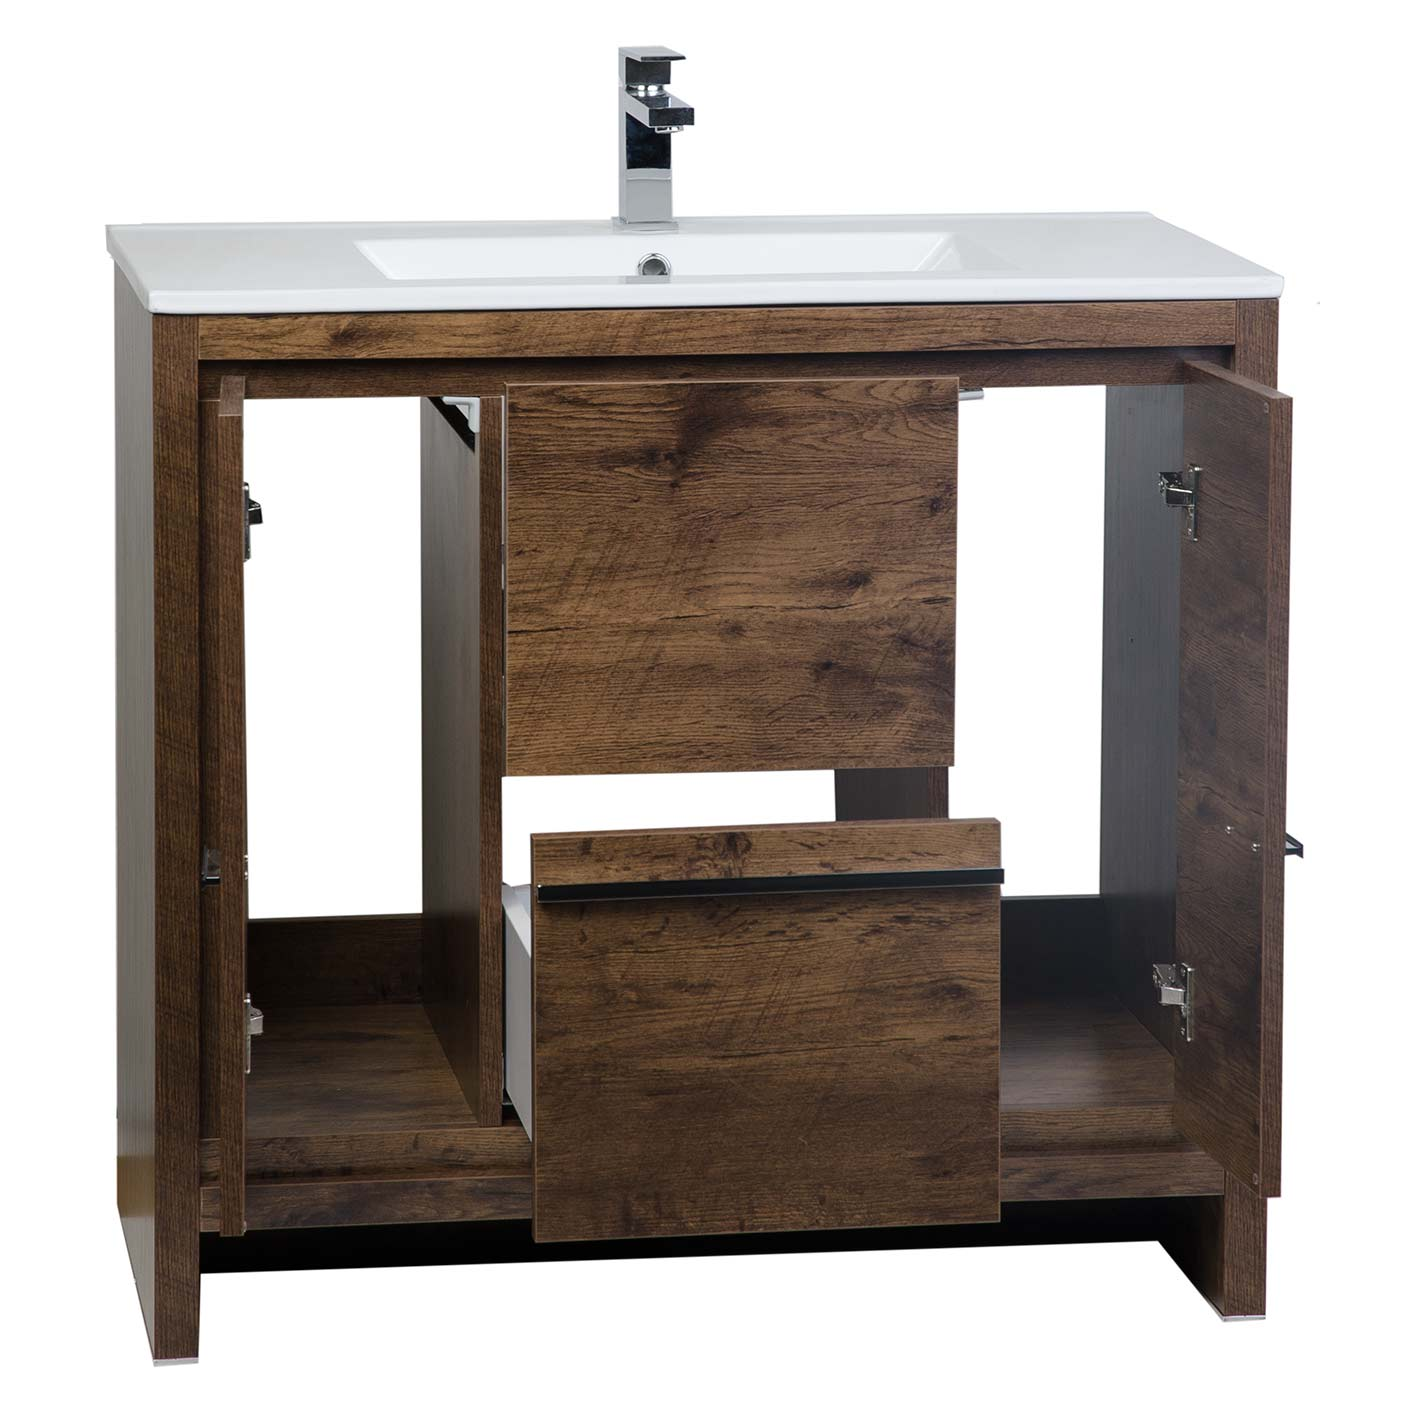 Contemporary Bathroom Vanities 36 Inch buy cbi enna 36 inch rosewood modern bathroom vanity tn-la900-rw